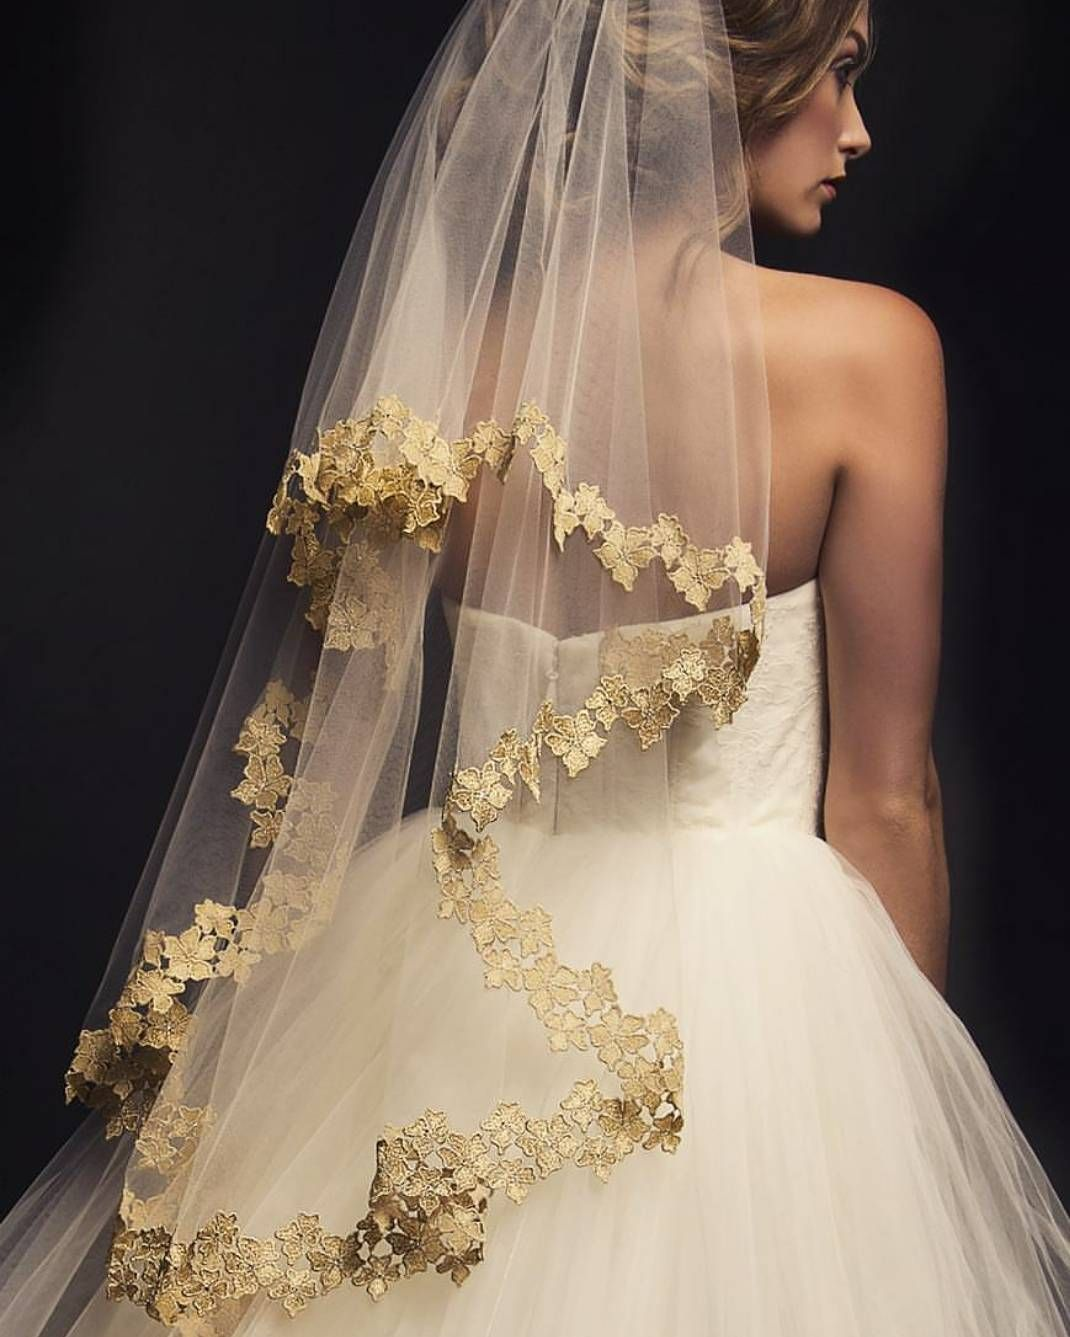 Veil game so strong! We are taken aback by this stunning waterfall veil by @arieljennifertaub. Particularly in love with the gold lace applique on the edge that gives the right amount of glamour and elegance to the whole design. Such a perfect complement to the white dress and definitely makes the bride's look stands out! Show some love and tag a friend who would be inspired by this too!  Veil @arieljennifertaub / Gown @rcennamo from @lesalonbridal / Photographer @danlippittphoto / Model…